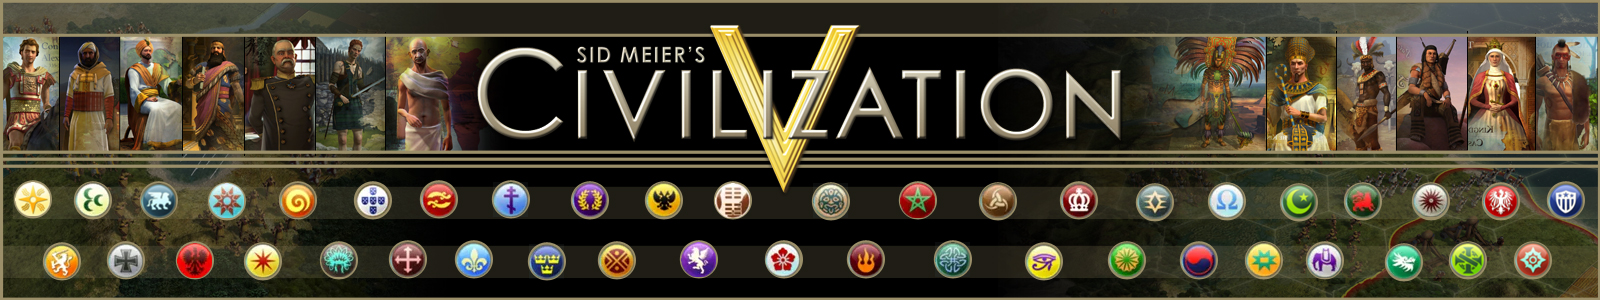 Выбор наций в Sid Meier's Civilization V